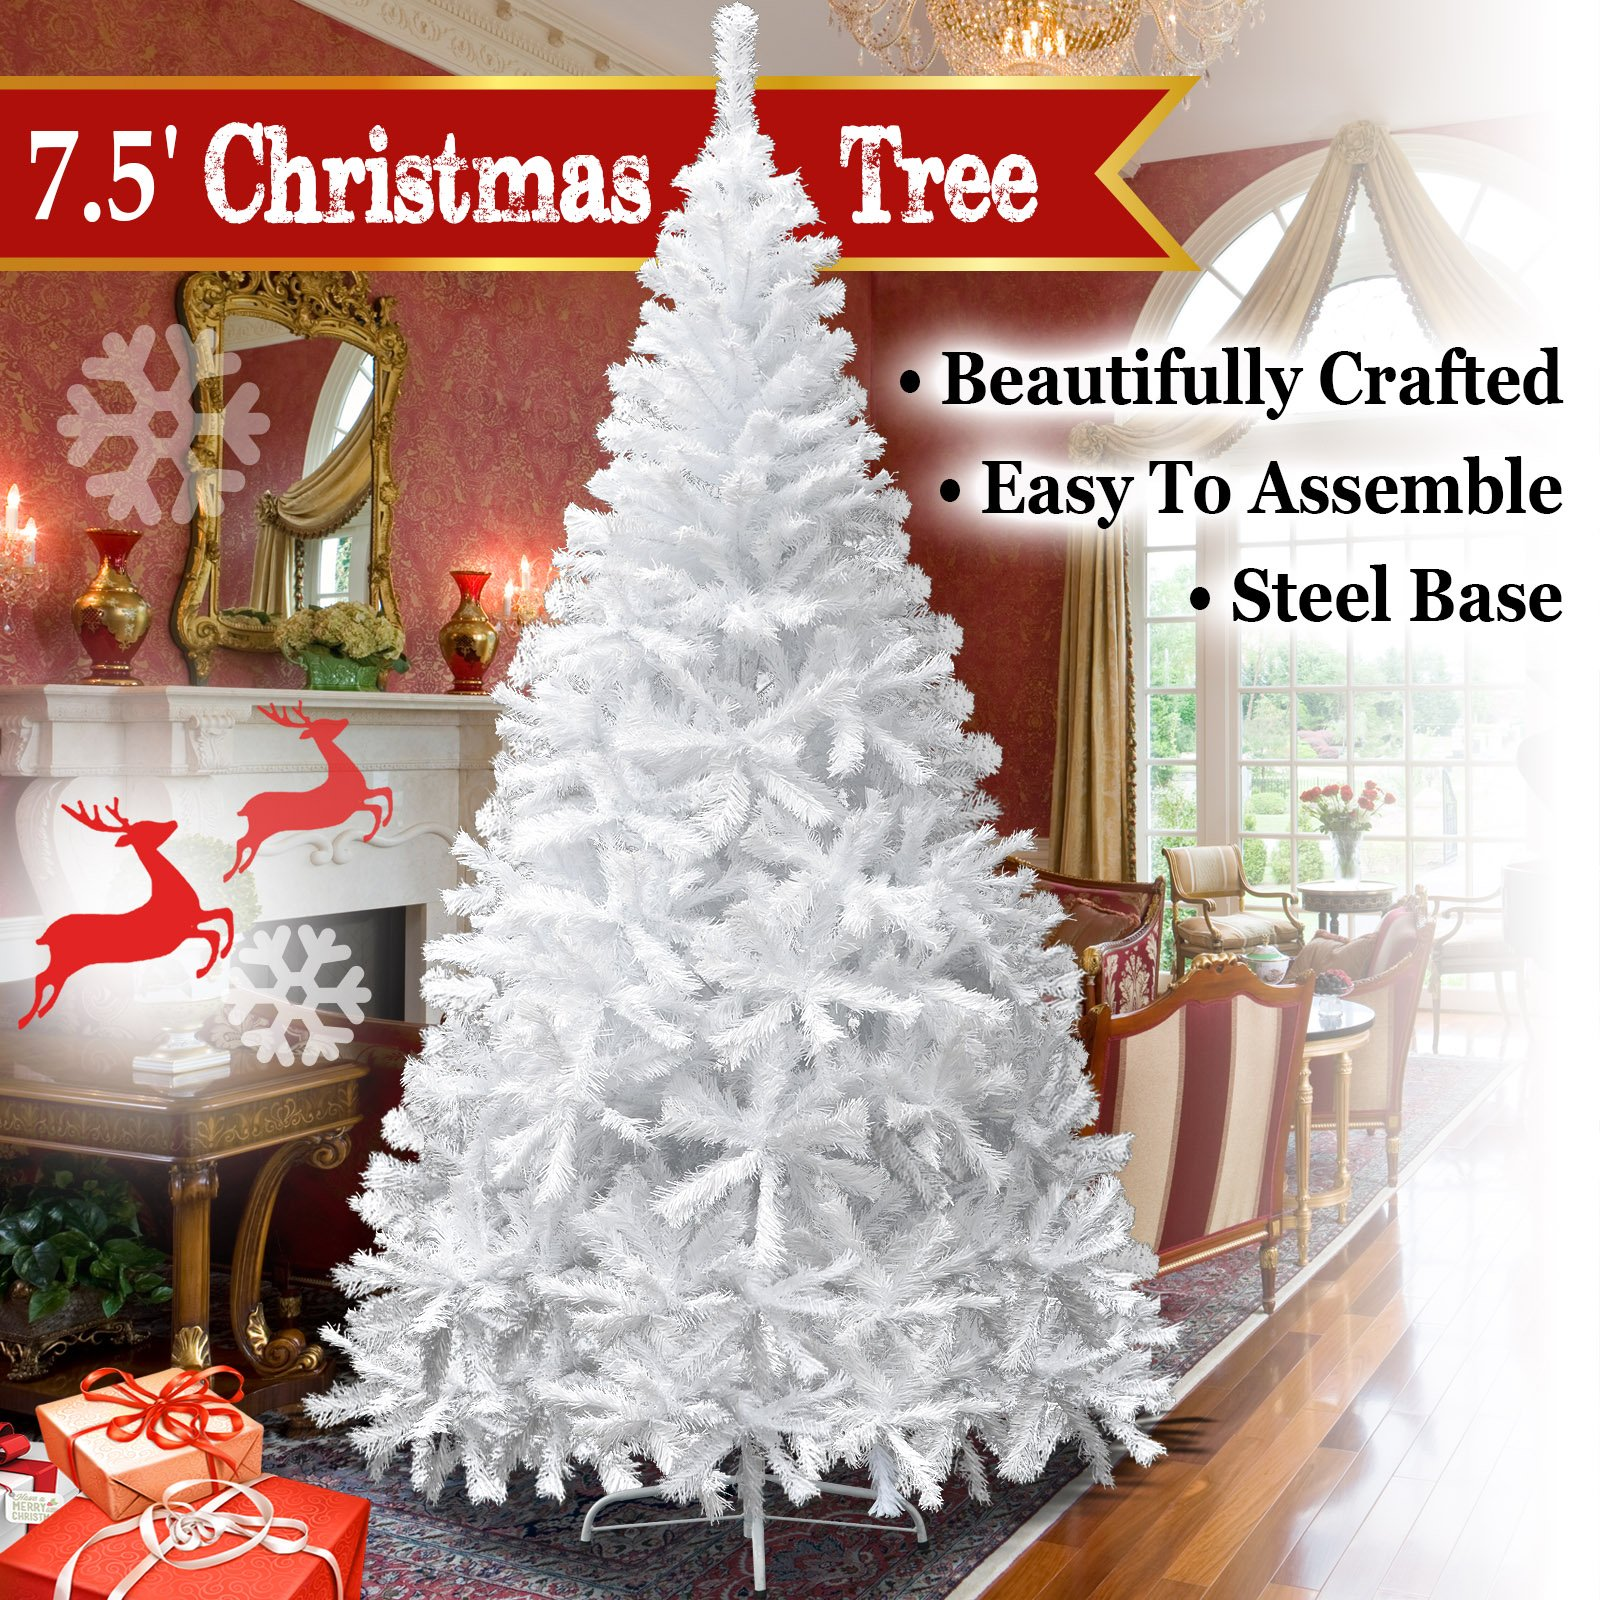 BenefitUSA Classic Pine Artificial Christmas Tree with Metal Stand, 7.5' White